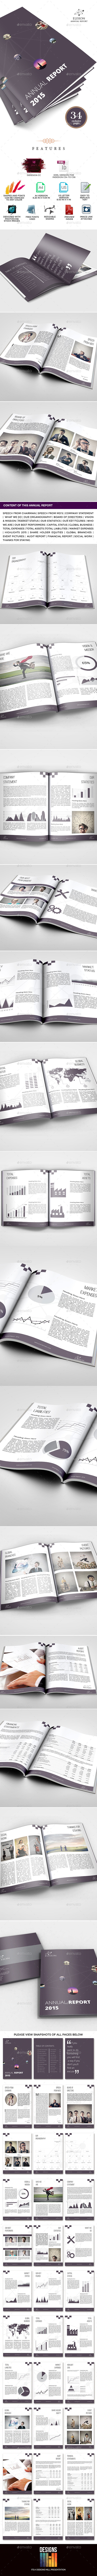 Elision Multipurpose Annual Report Template - Informational Brochures